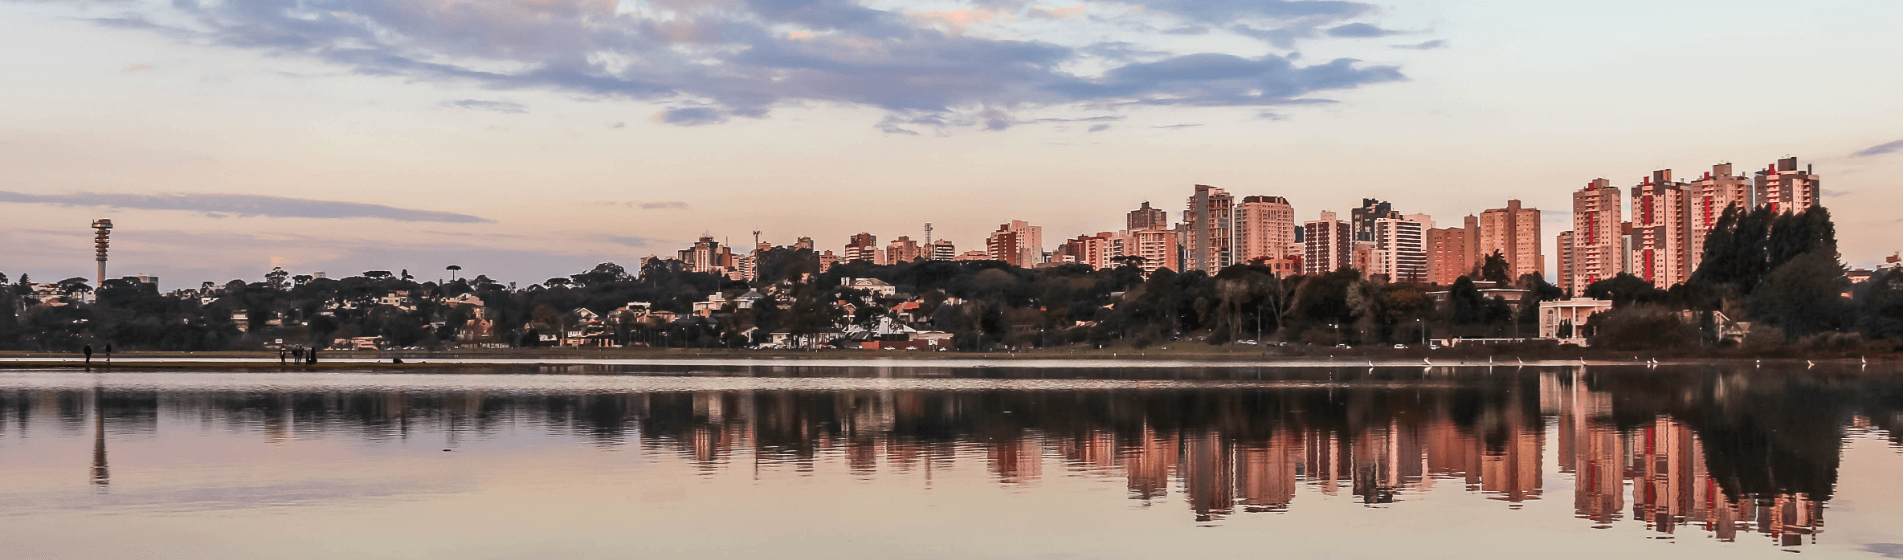 Cities in Brazil you can't afford to ignore for business